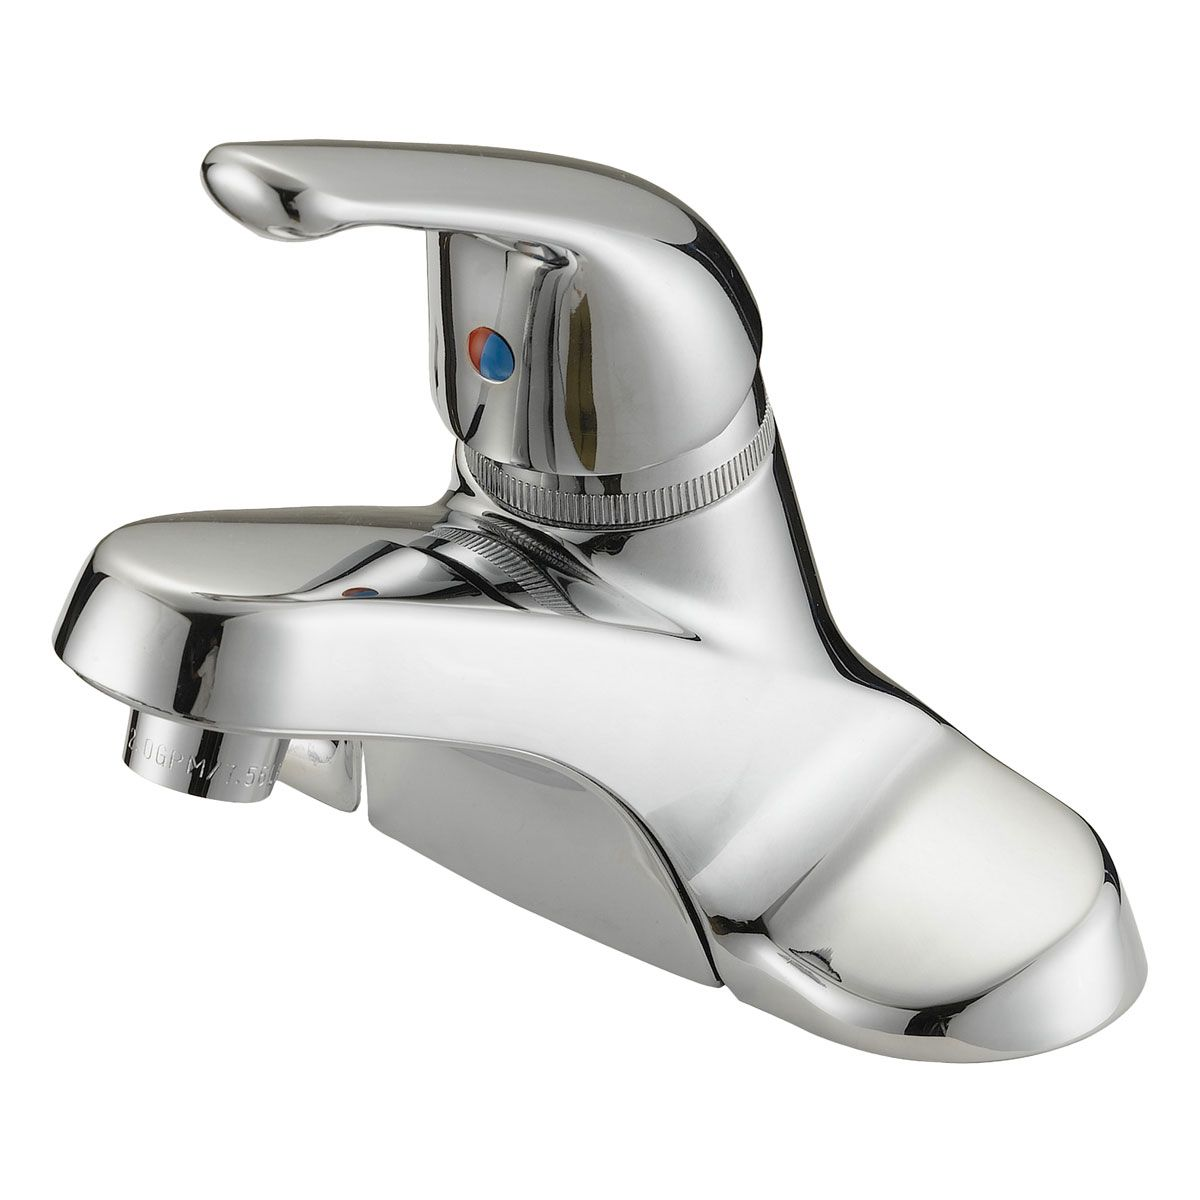 Pin By Aaa Distributor On Bathroom Faucets Bathroom Faucets Faucet Chrome Faucet